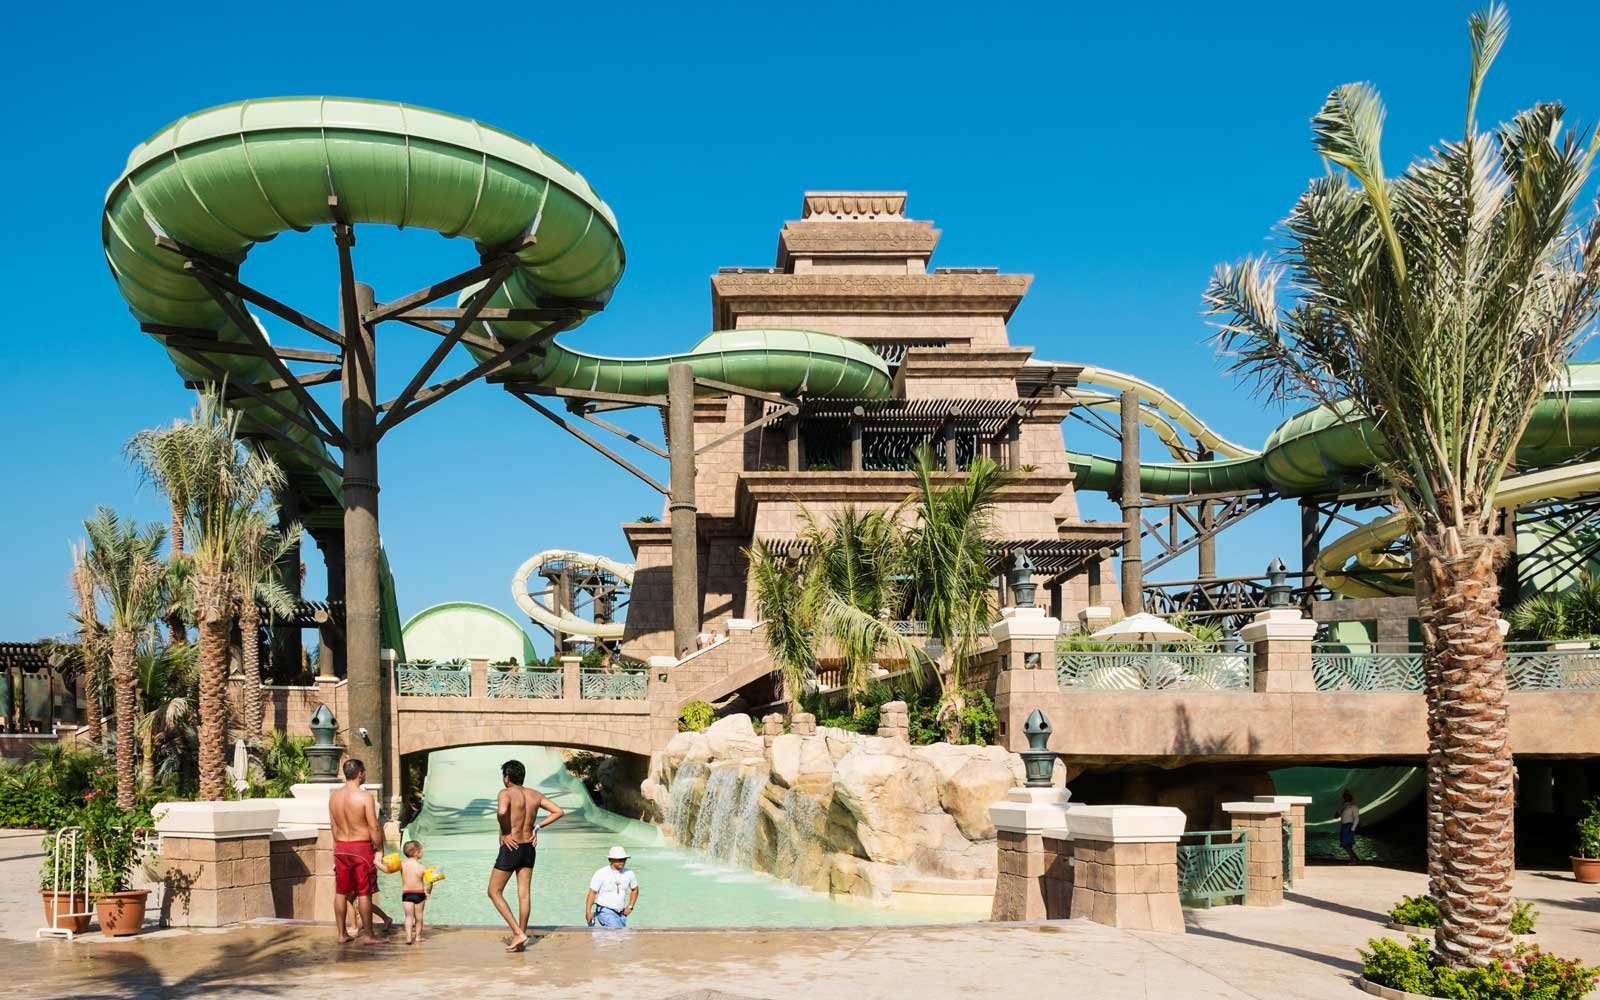 Poseidon's Revenge — Aquaventure Water Park at Atlantis the Palm, Dubai